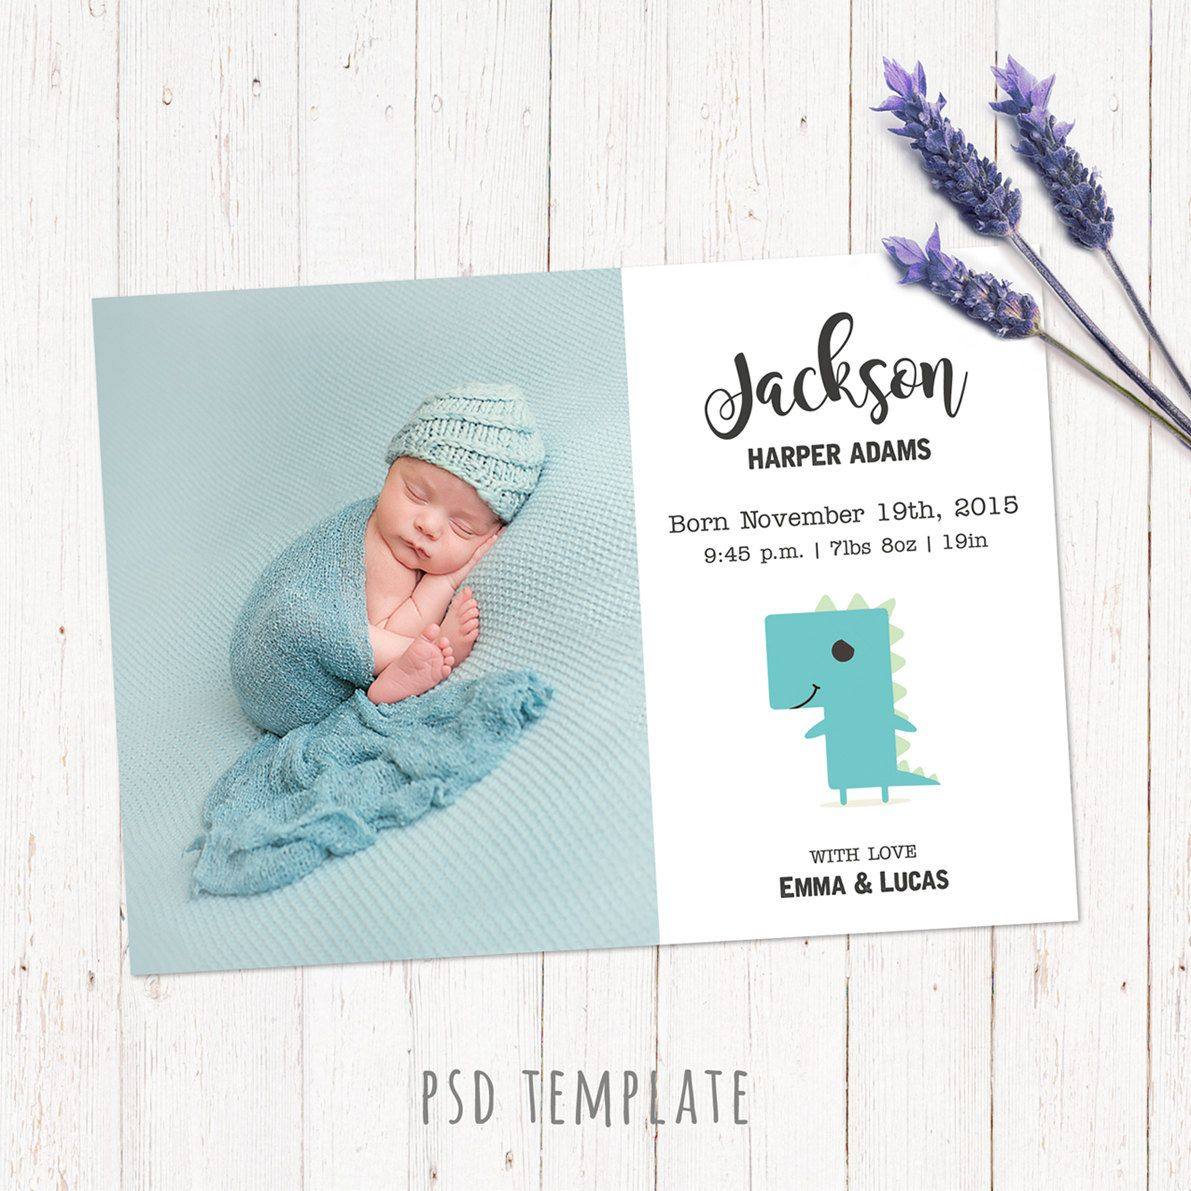 Birth Announcement Template Card. Newborn Baby Boy Birth Card For Instant  Download. Fully Editable